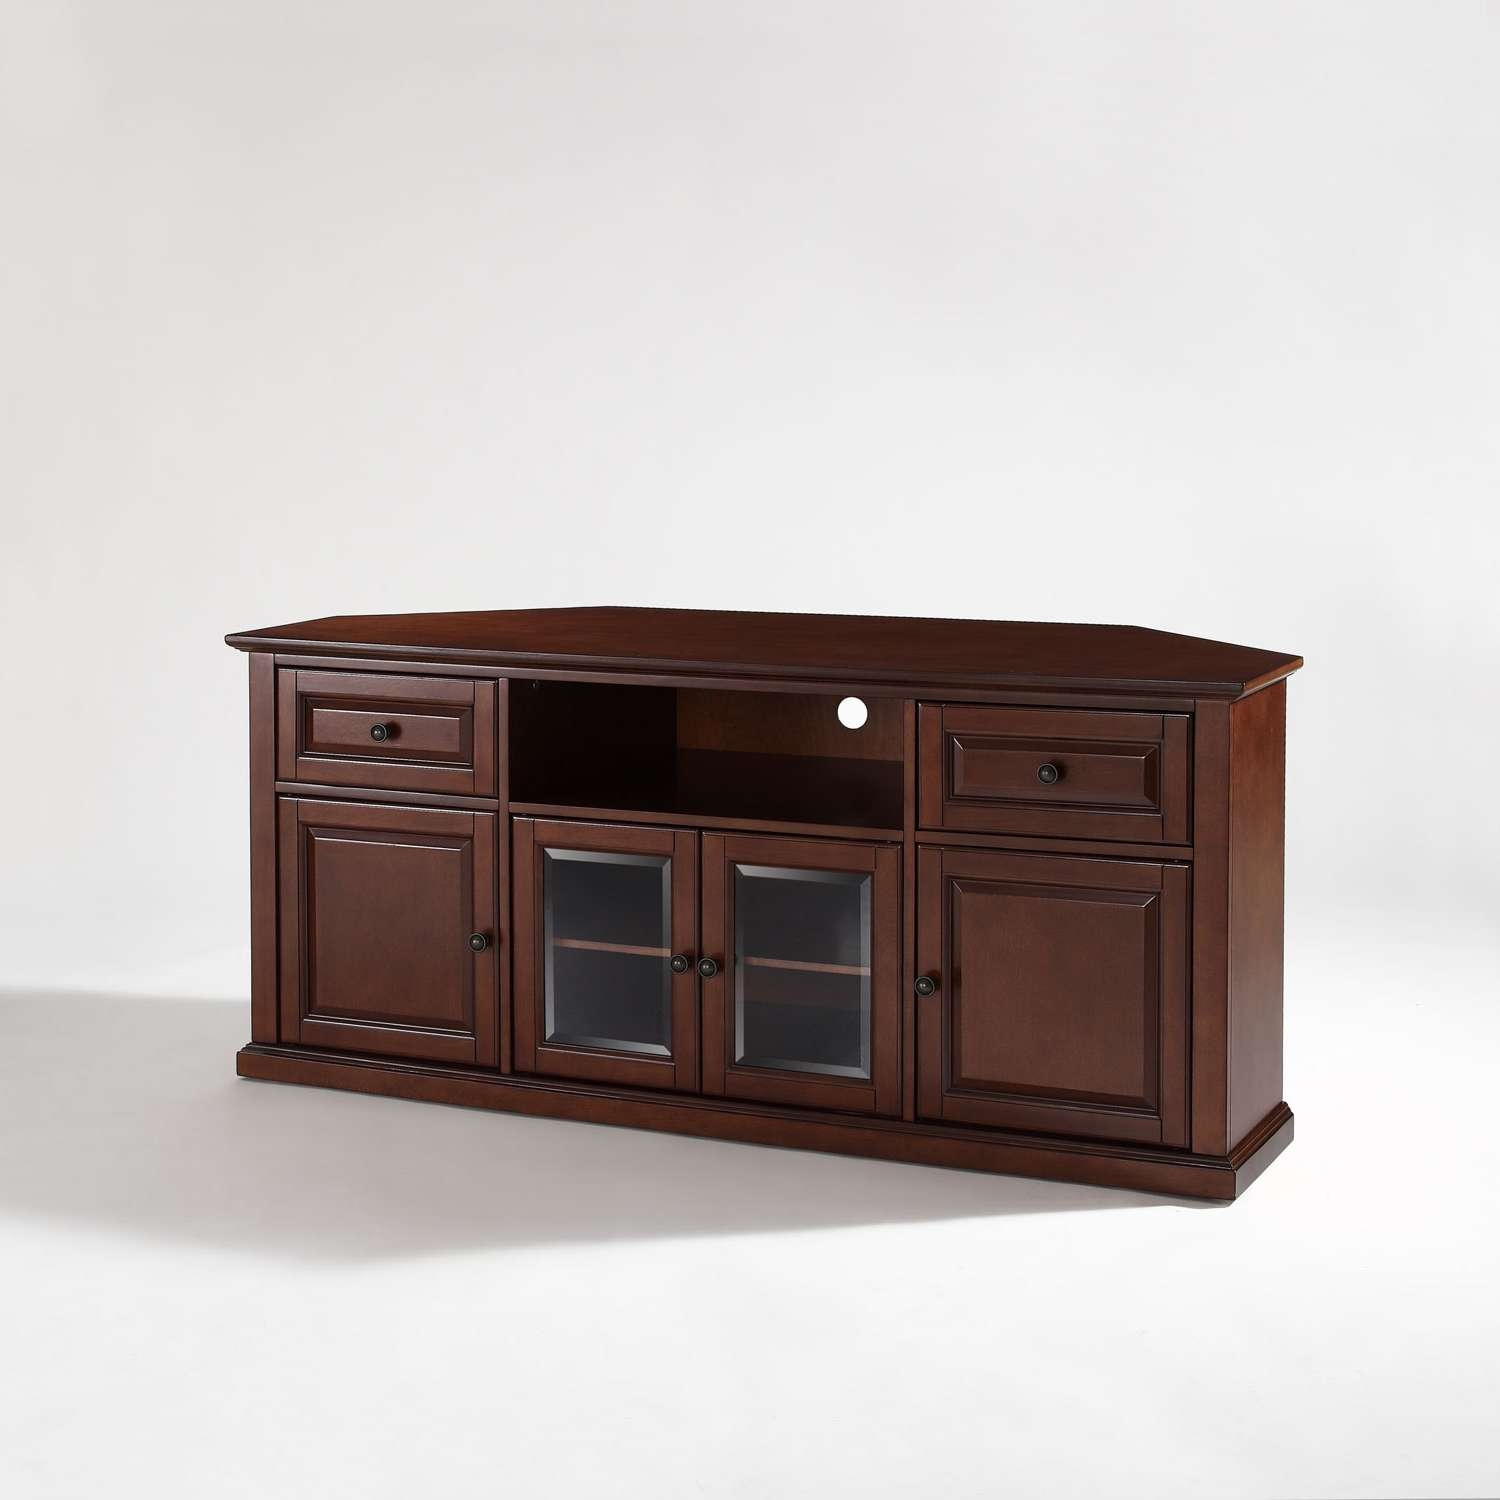 60 Inch Corner Tv Stand In Vintage Mahogany Crosley Furniture With Regard To Corner 60 Inch Tv Stands (View 2 of 15)